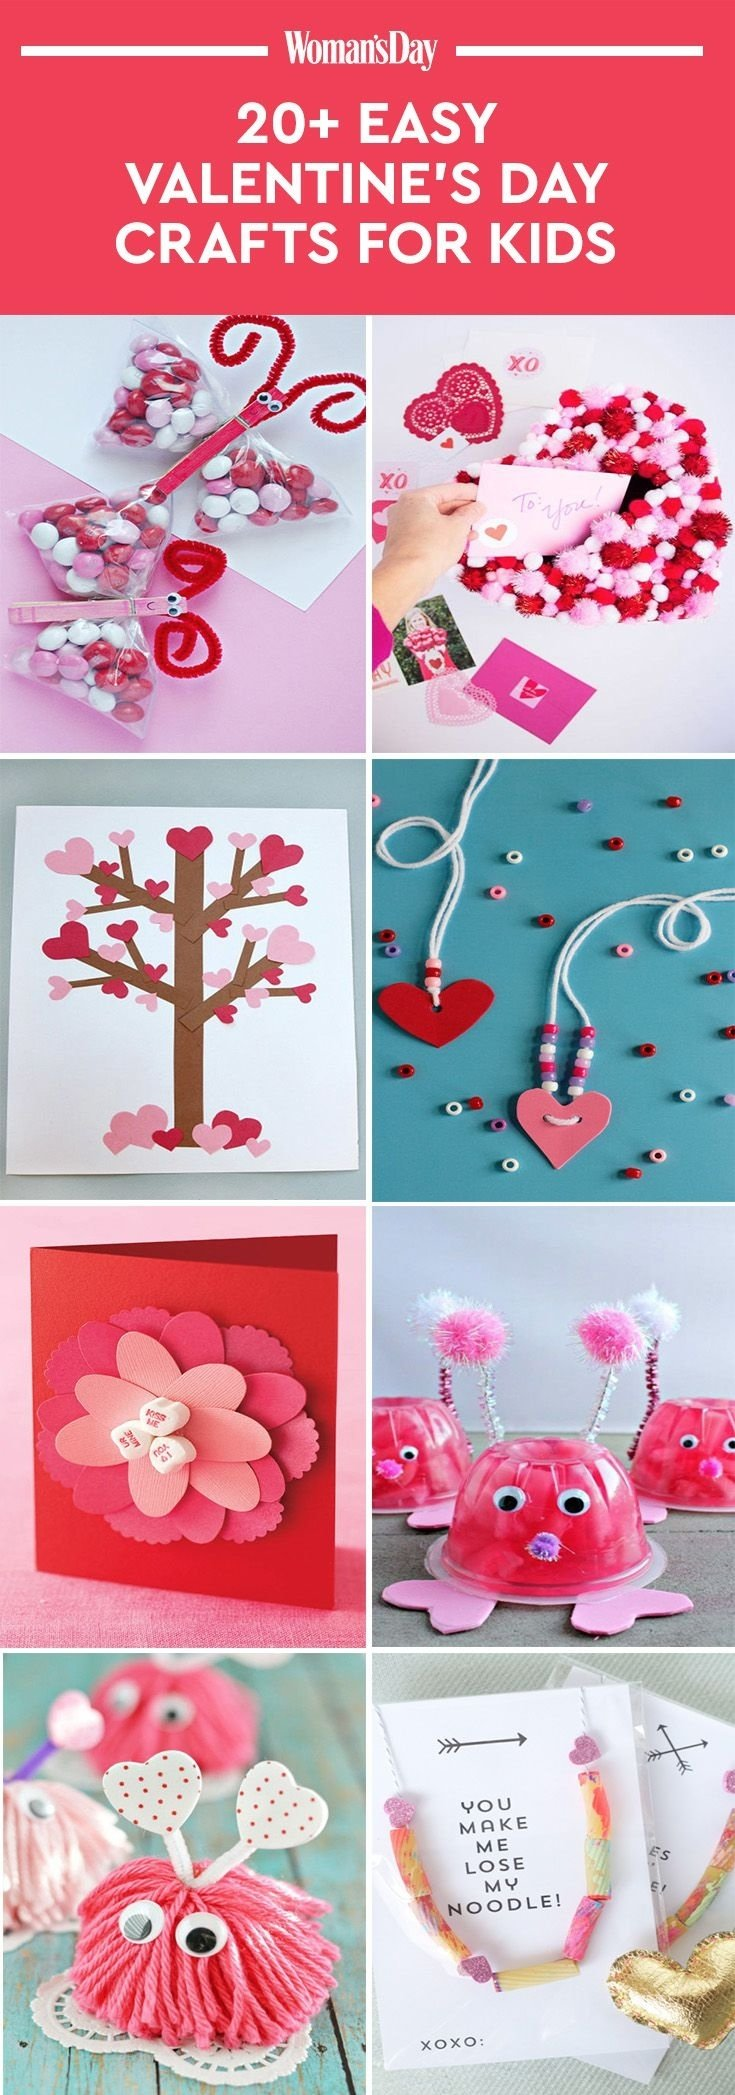 10 Trendy Valentine Day Ideas For Kids 22 valentines day crafts for kids fun heart arts and crafts 2020